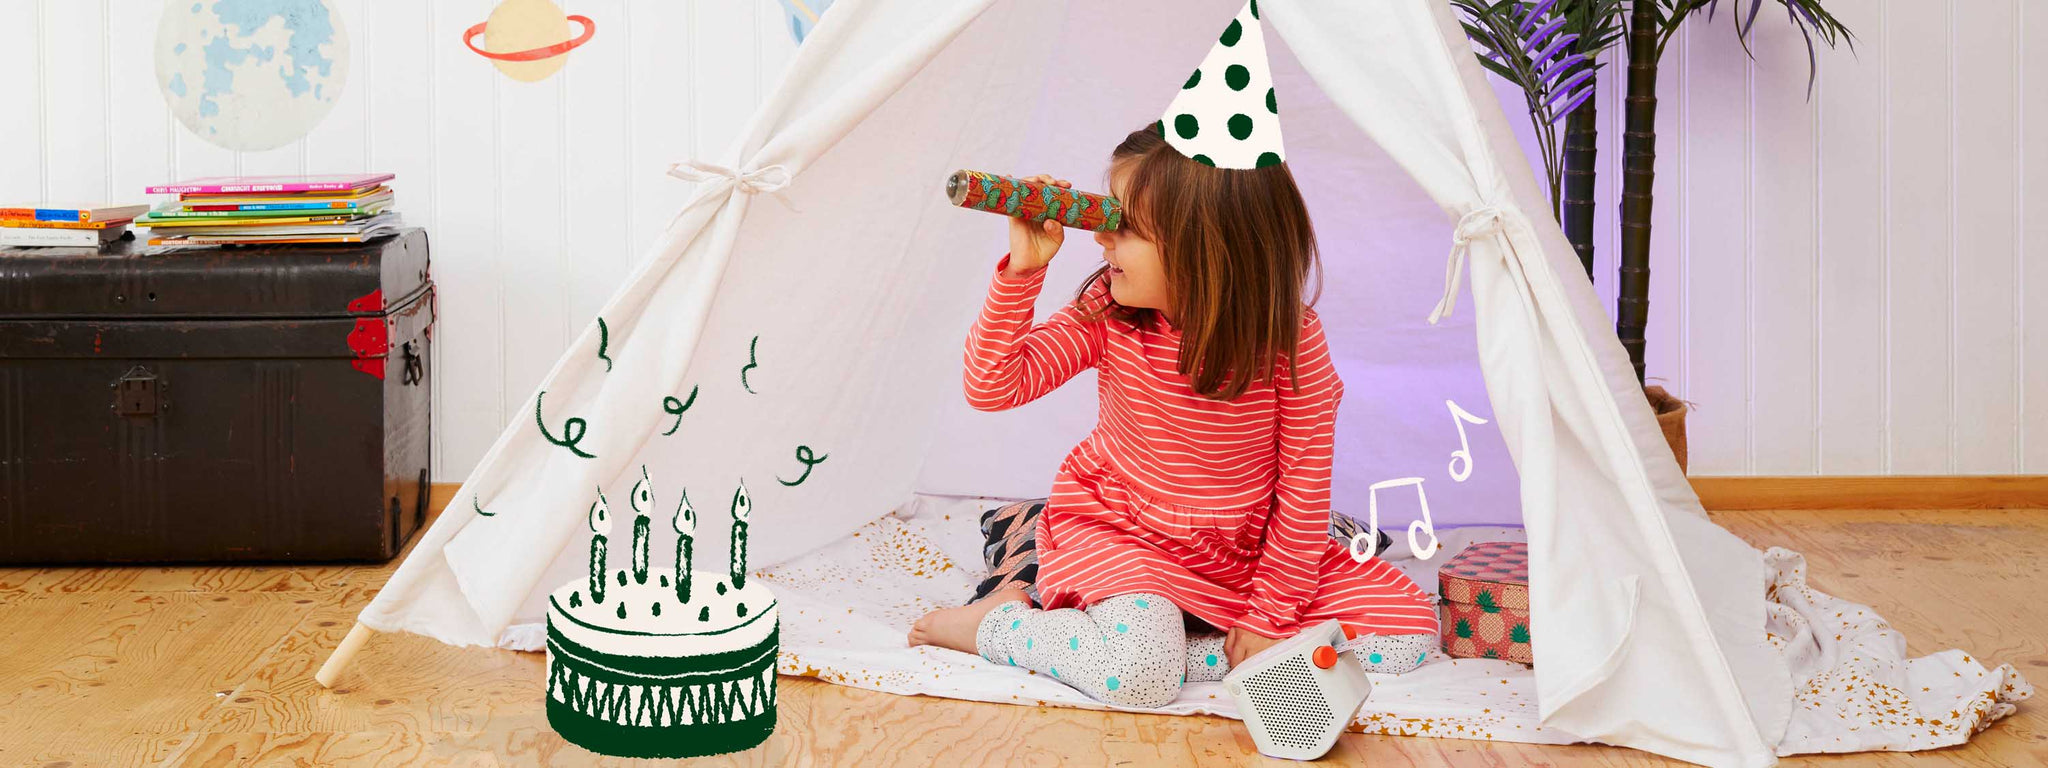 How to throw your child a birthday party at home